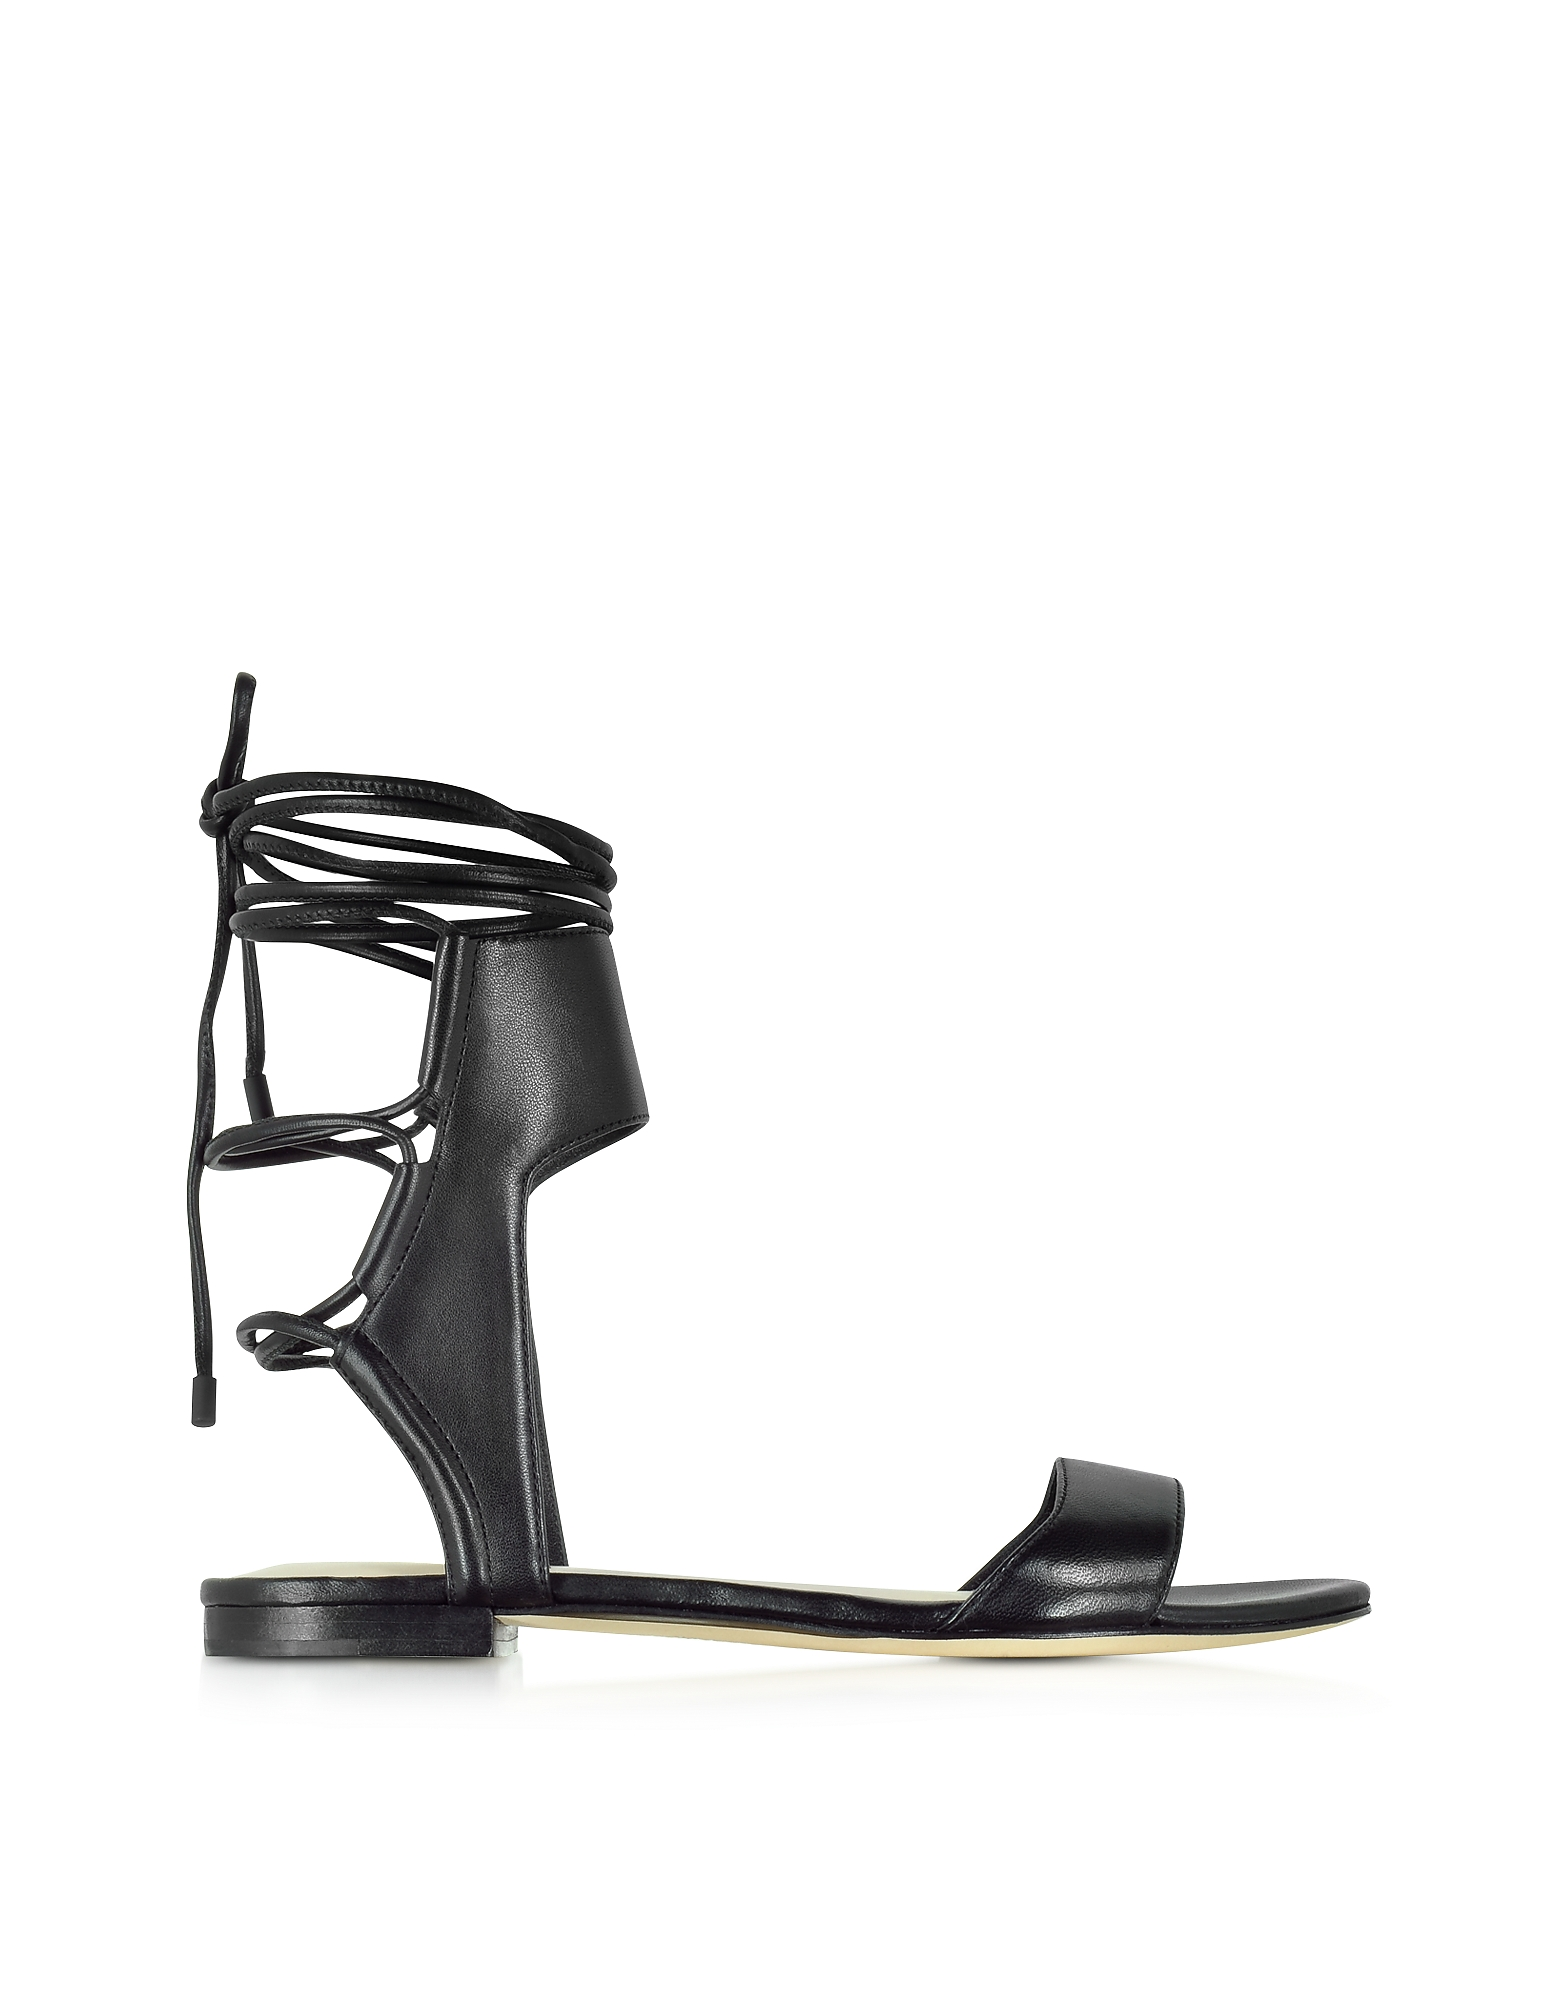 Martini Black Leather Ankle Lace Flat Sandal